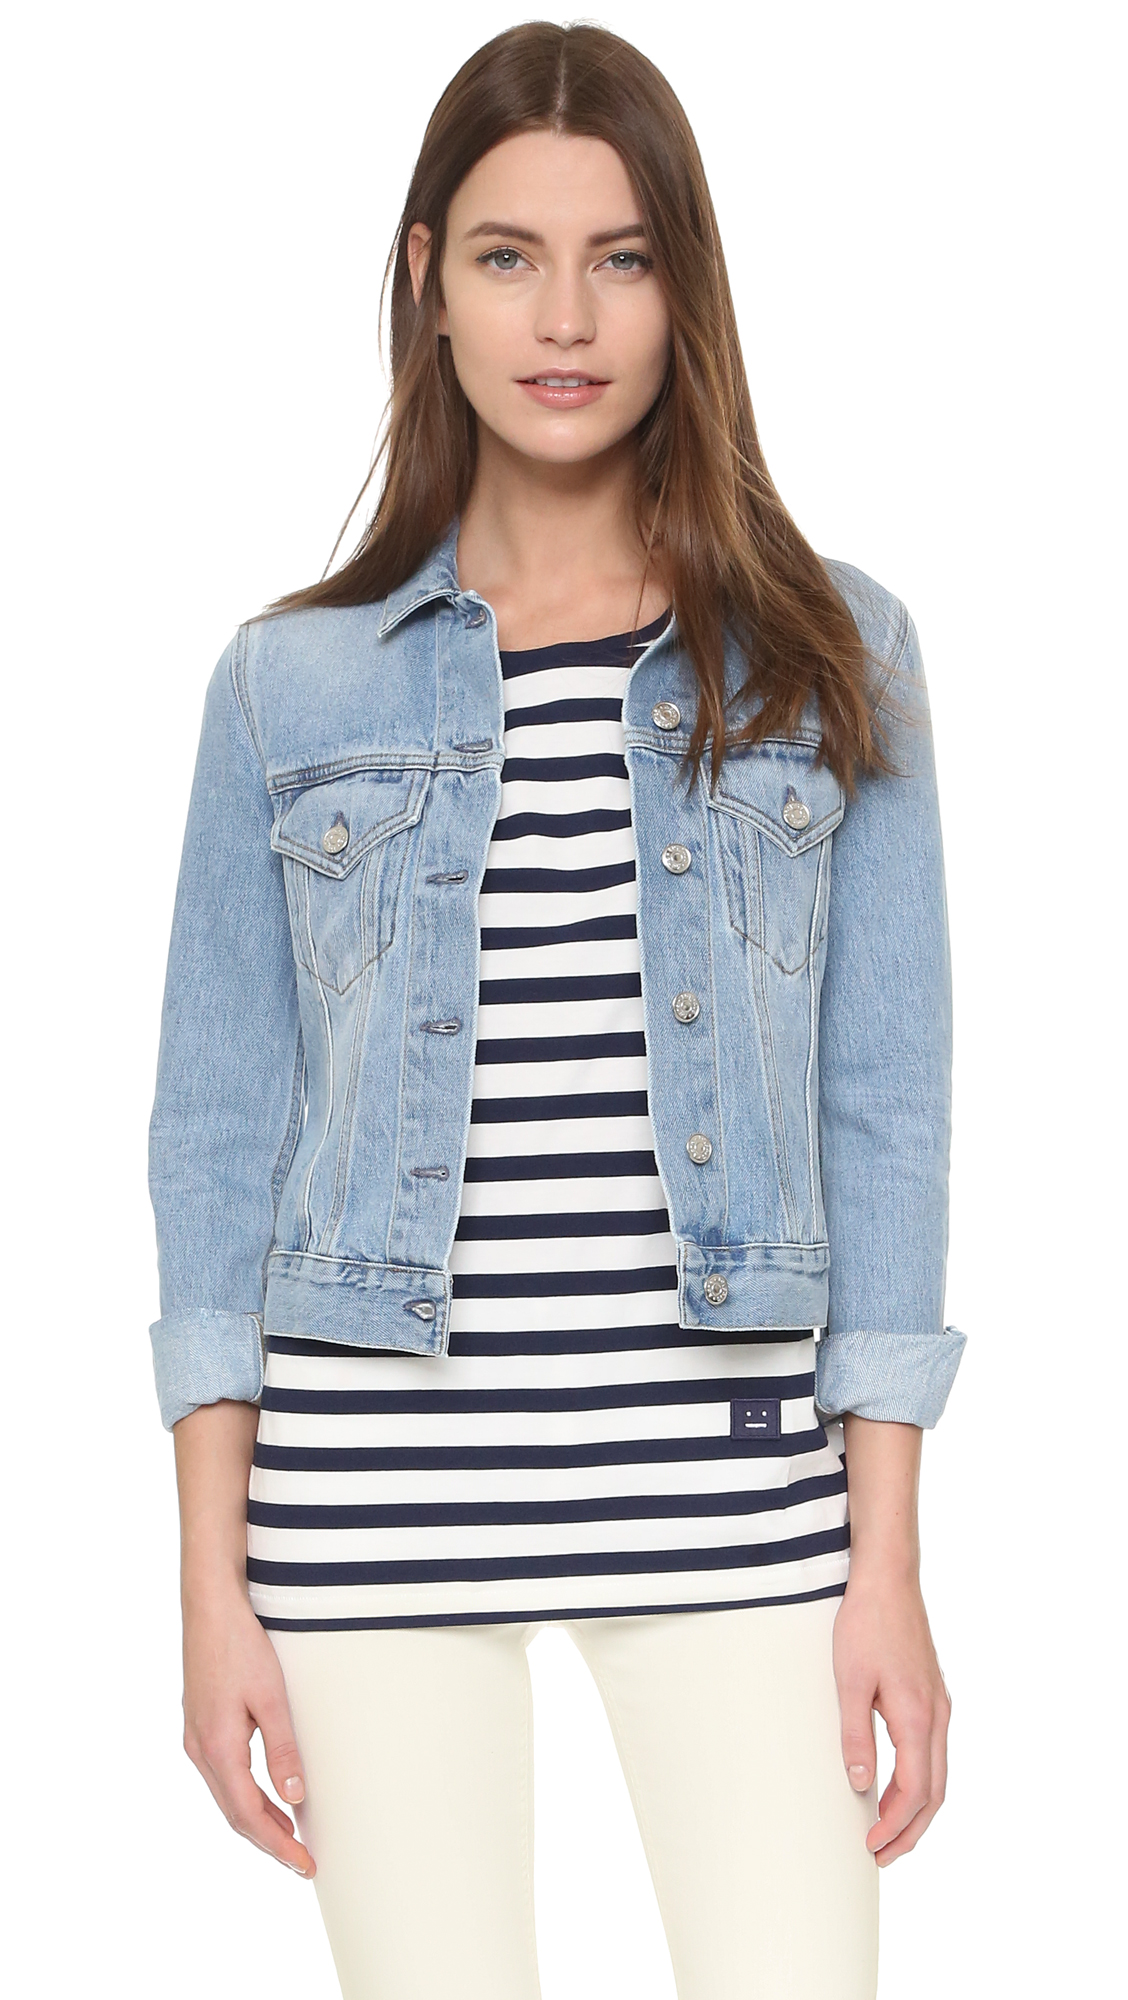 Acne Studios Top Denim Jacket - Light Vintage at Shopbop